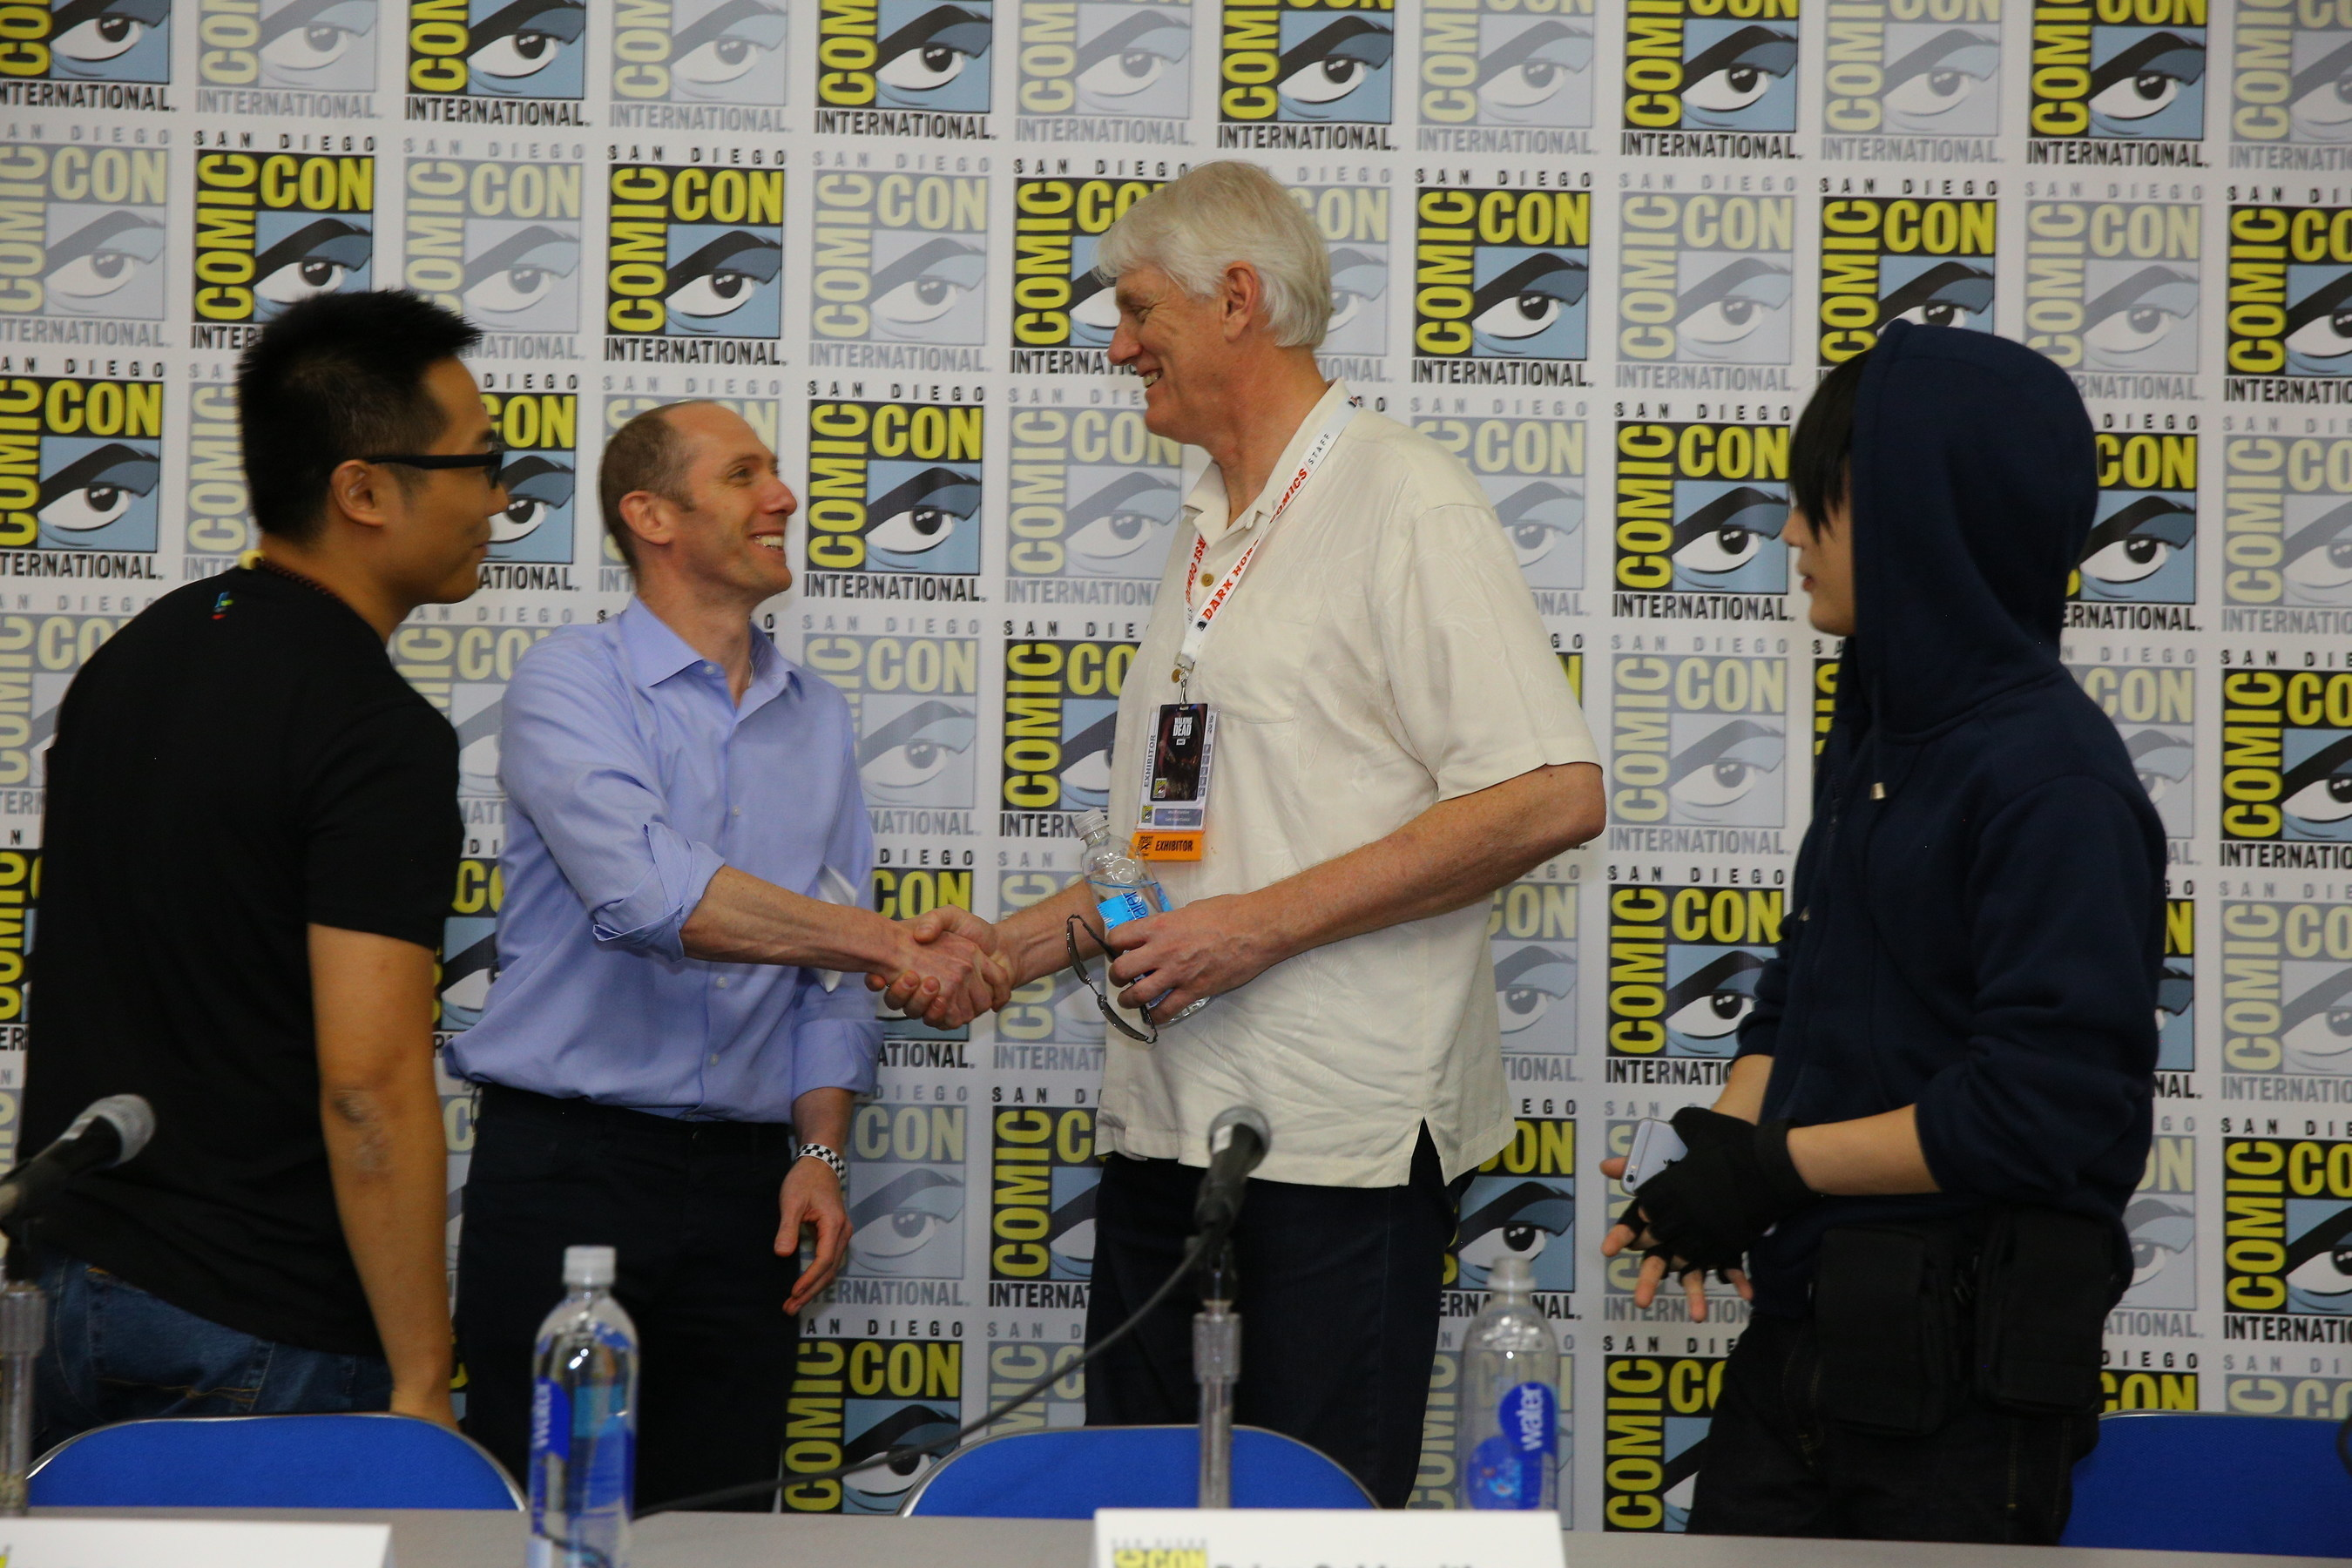 """(L-R) Liu Peiyao, VP LeVP; Brian Goldsmith, COO, Lionsgate; Mike Richardson, Founder, Dark Horse Comics; Huang Shan, #1 Chinese Cosplayer following """"The Super Fan Phenomenon in China"""" panel at SDCC"""